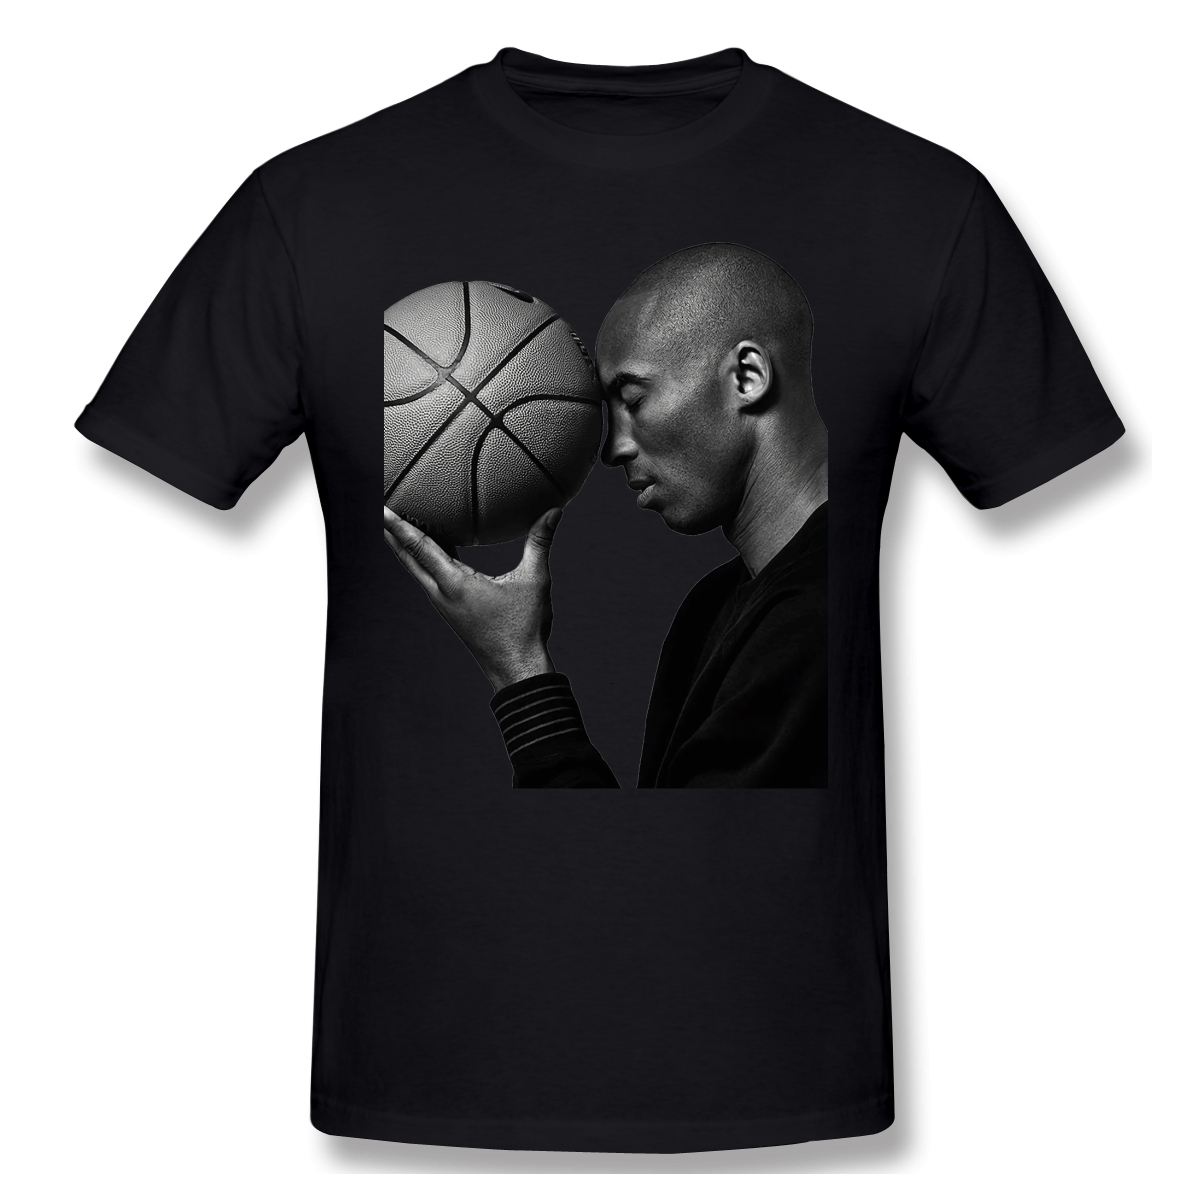 New Summer T Shirt Lifetime Basketball T-Shirt 100 Percent Cotton Bryant Ofertas Tee Shirt Basic Short Sleeve Man Tshirt